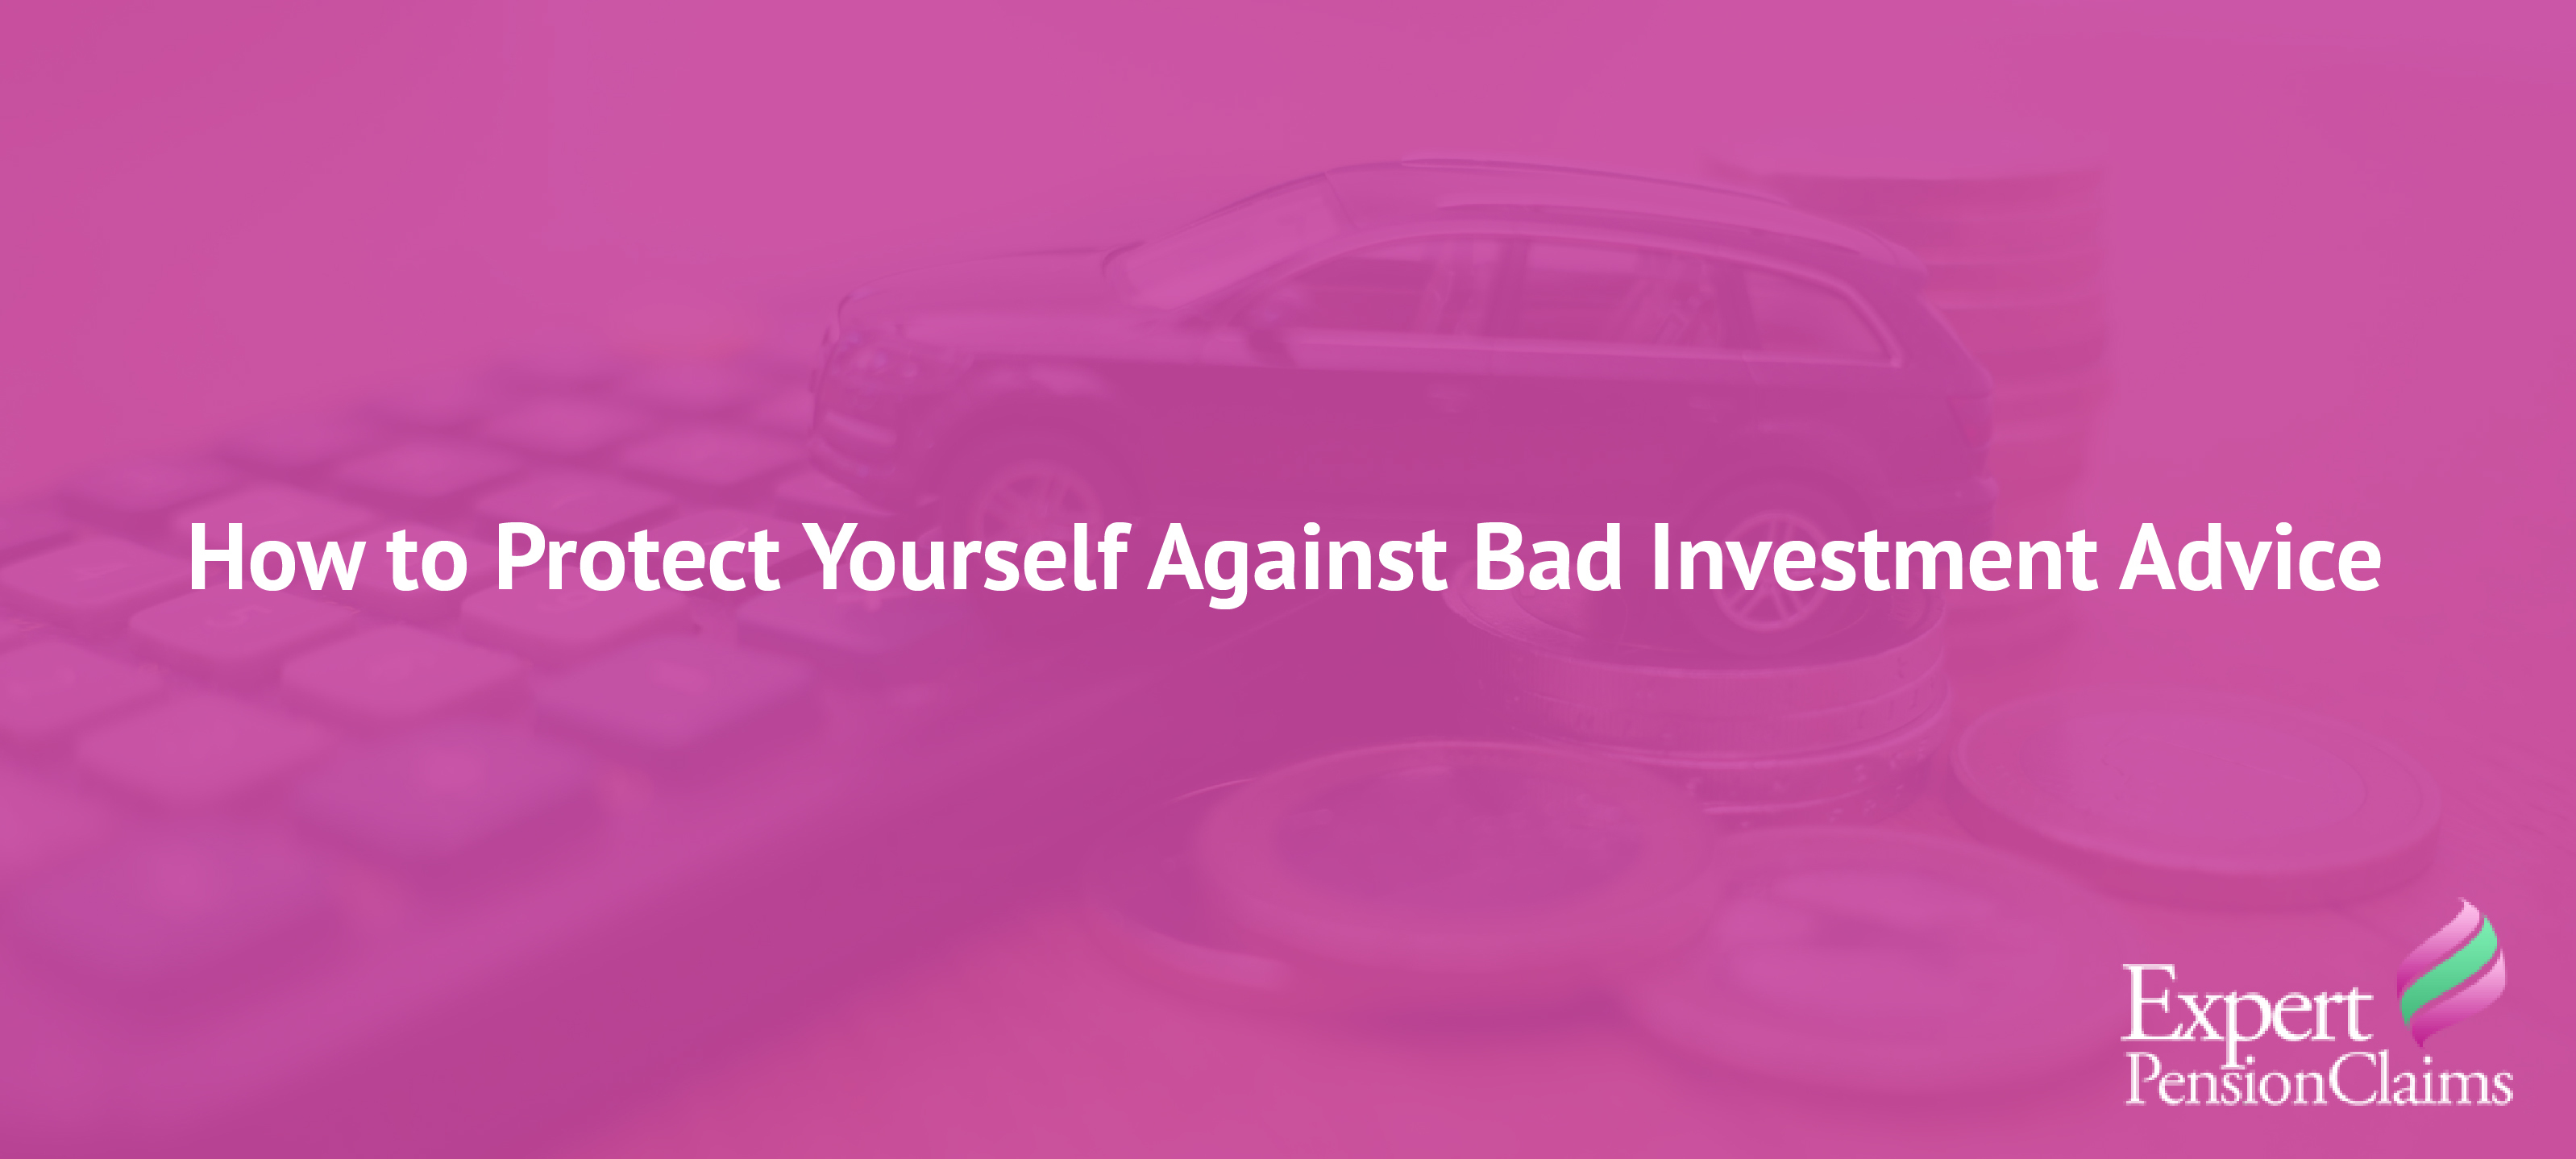 How to protect yourself against bad investment advice